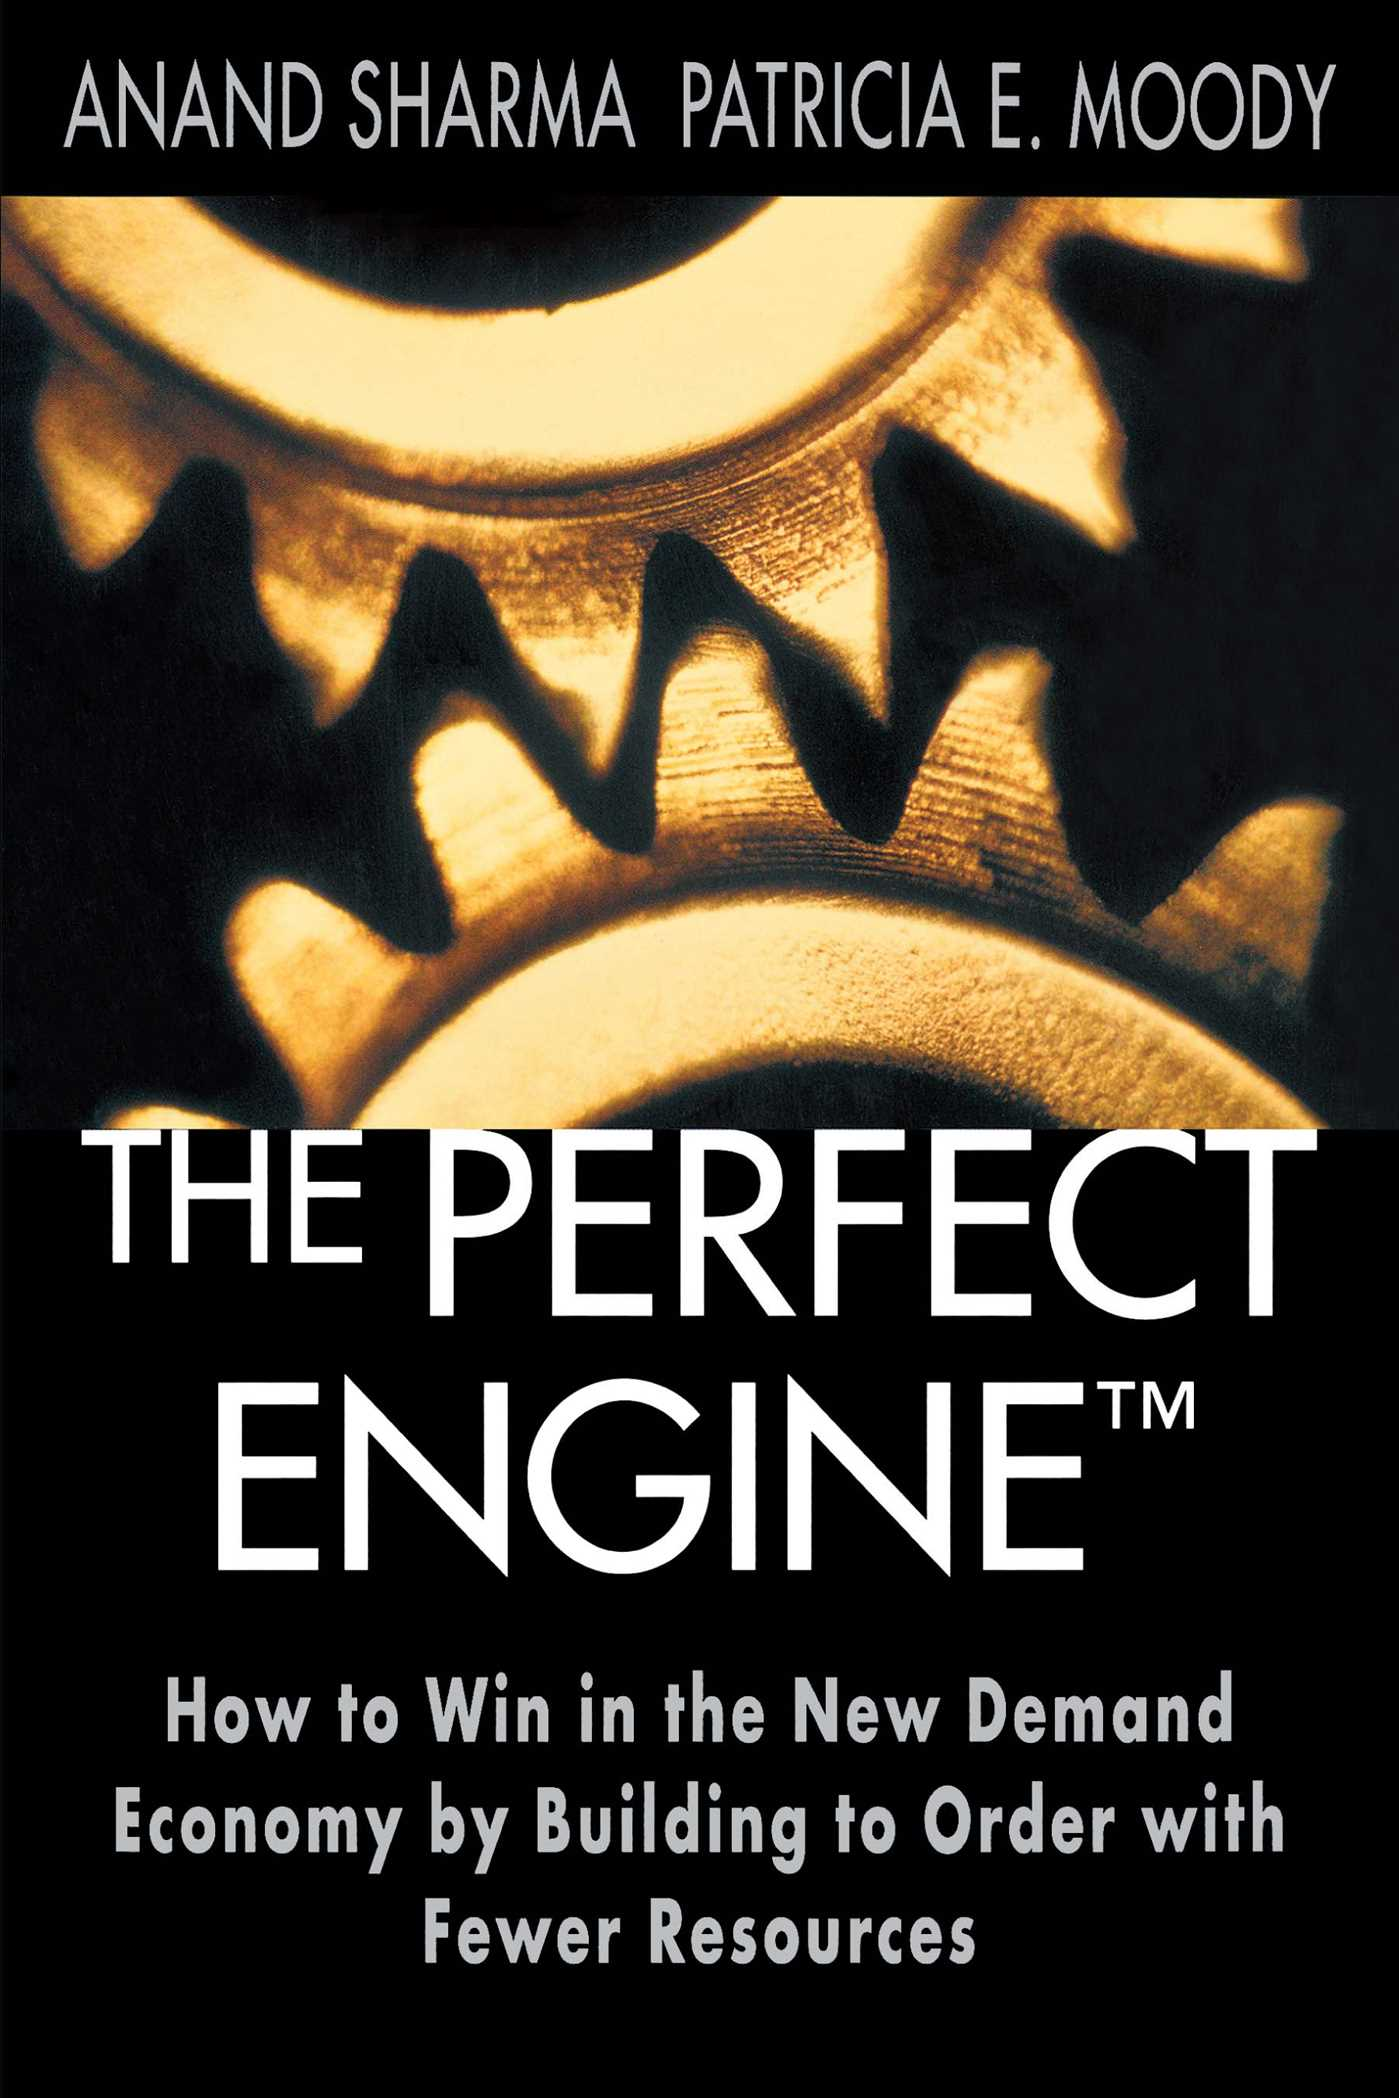 The-perfect-engine-9781451640854_hr